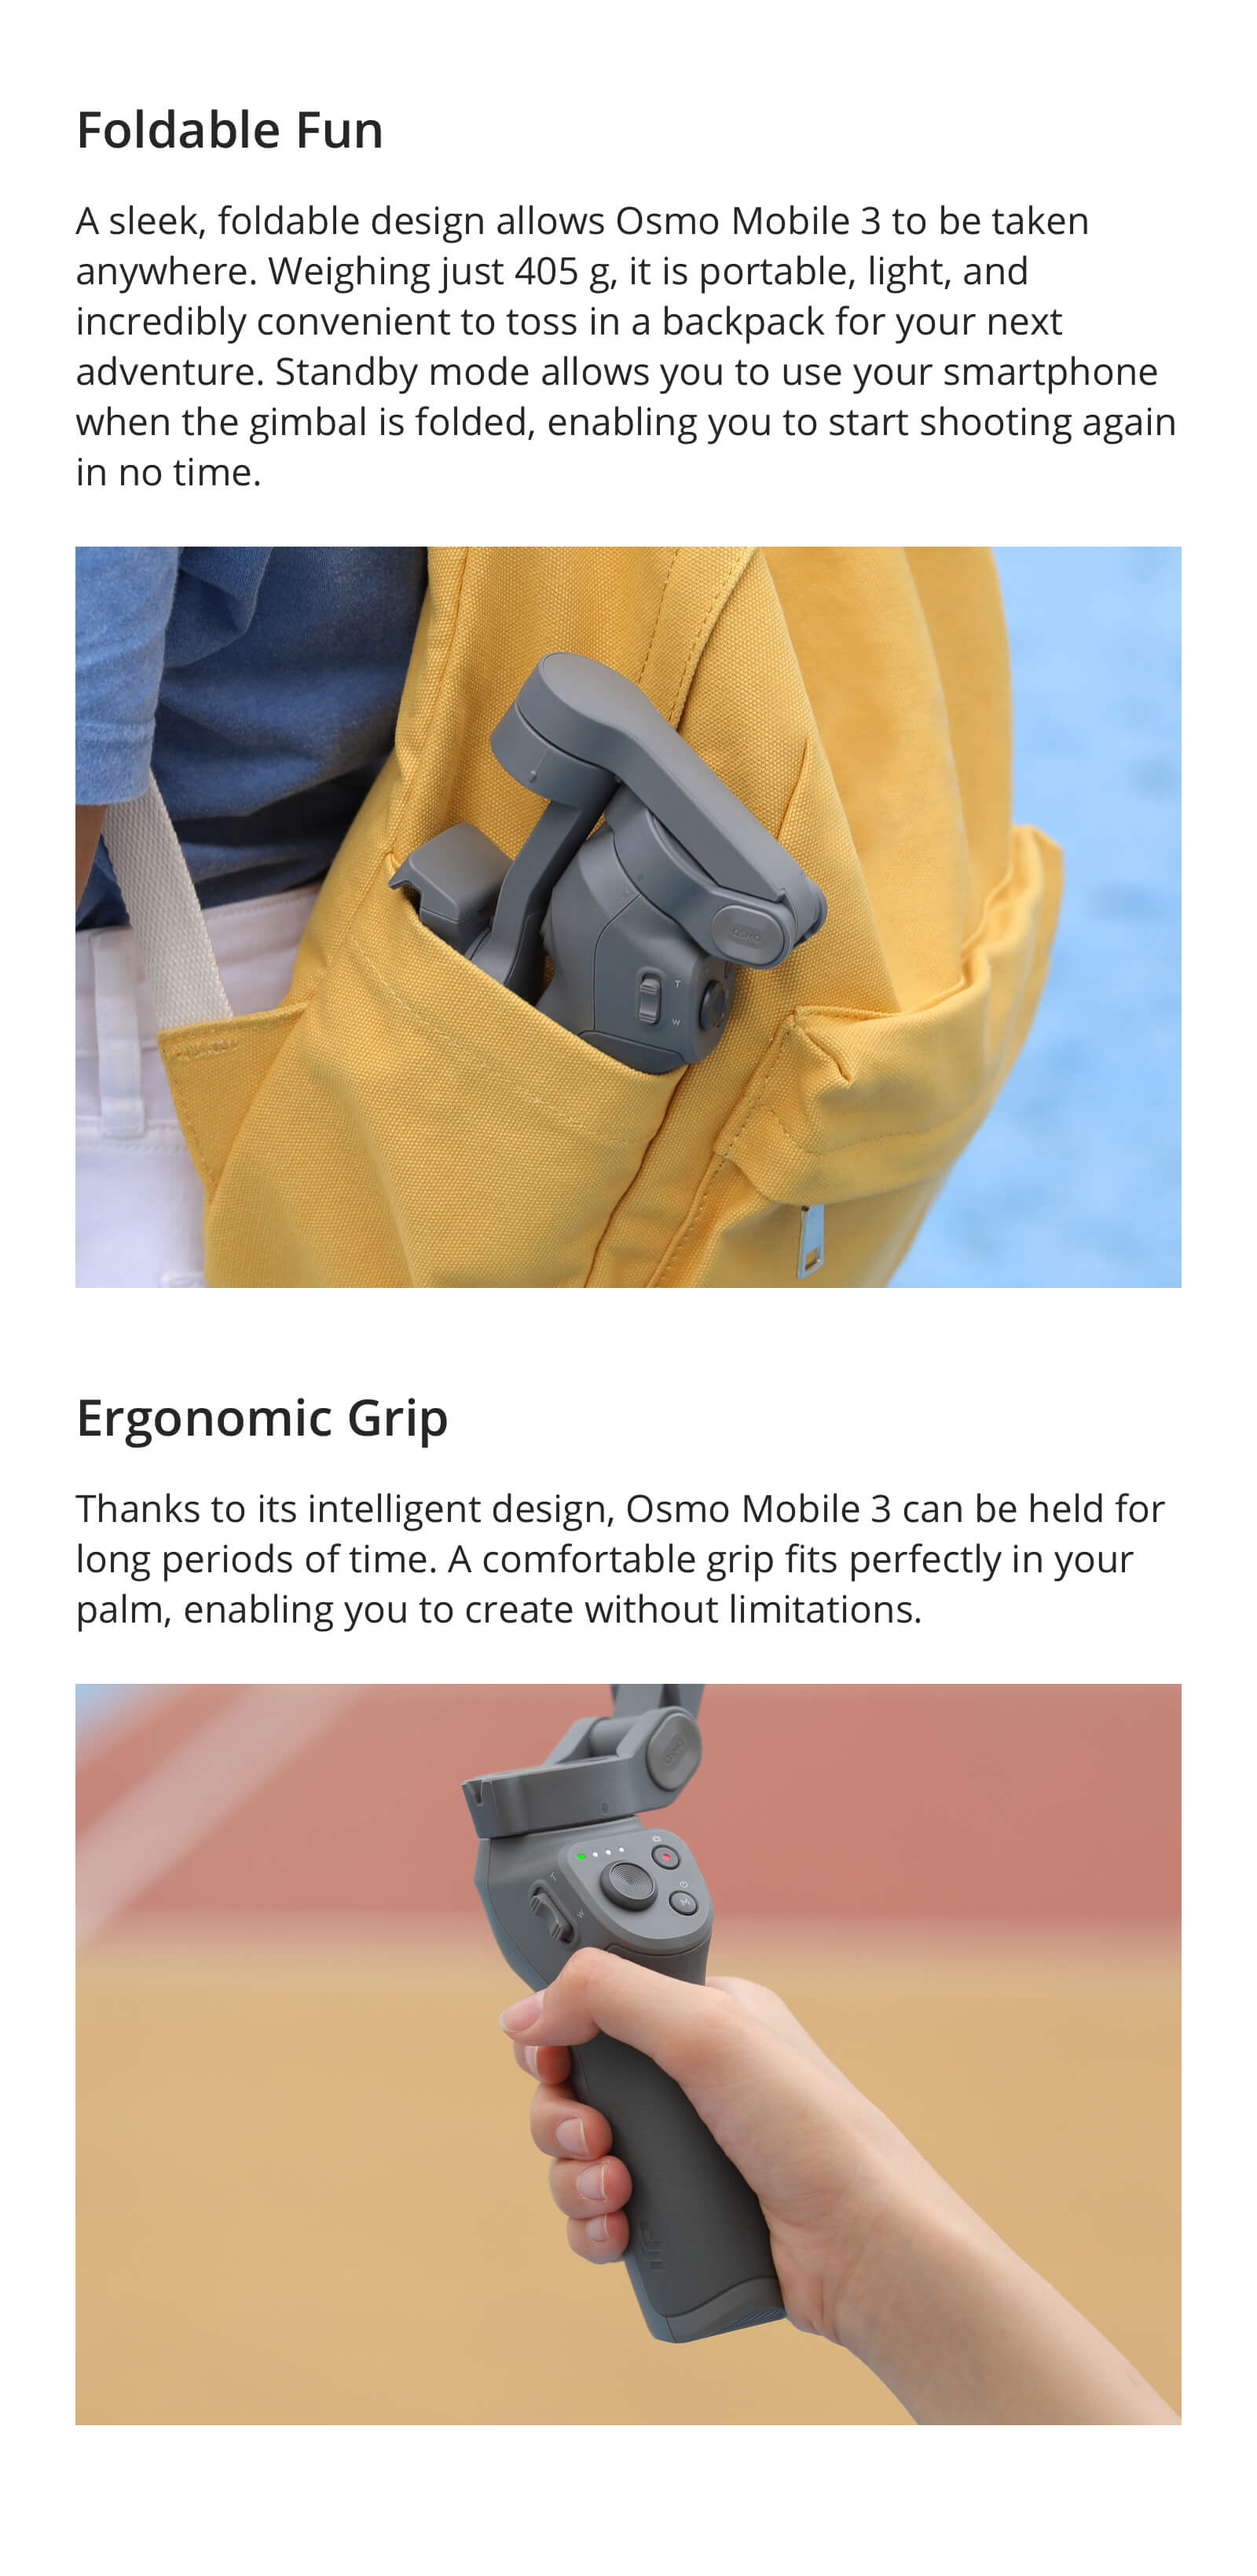 DJI Osmo Mobile 3 is a foldable gimbal for smartphones with intelligent functions providing stable and smooth footage.